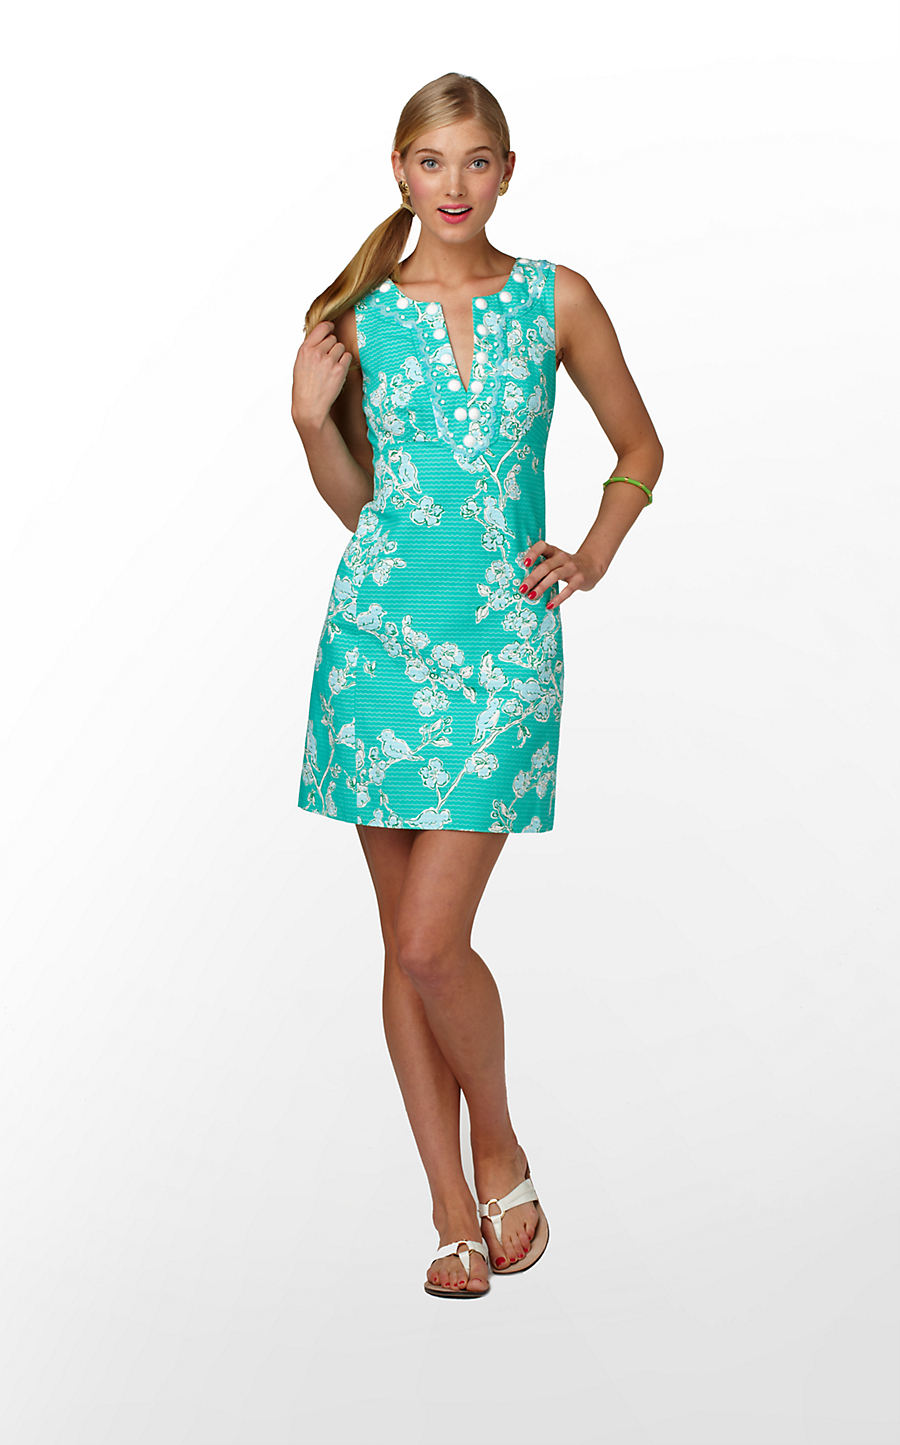 c1490802742983 While I don't wear white dresses, I'm hoping it comes out in another color  later. Perfect for a bride at a shower, sorority girls for initiation and a  great ...